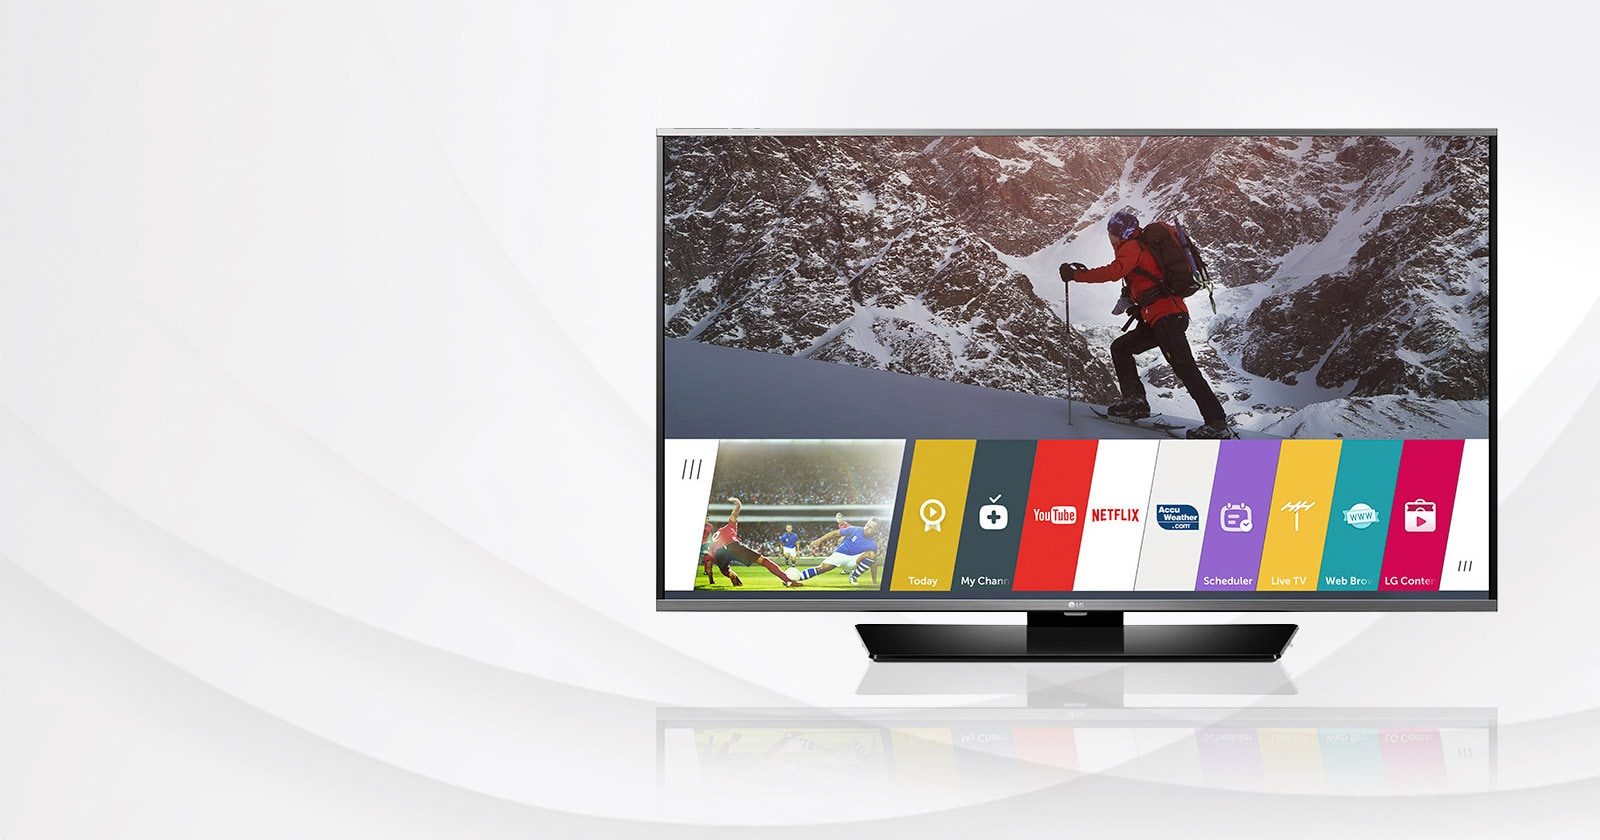 how to delete videos on lg smart tv